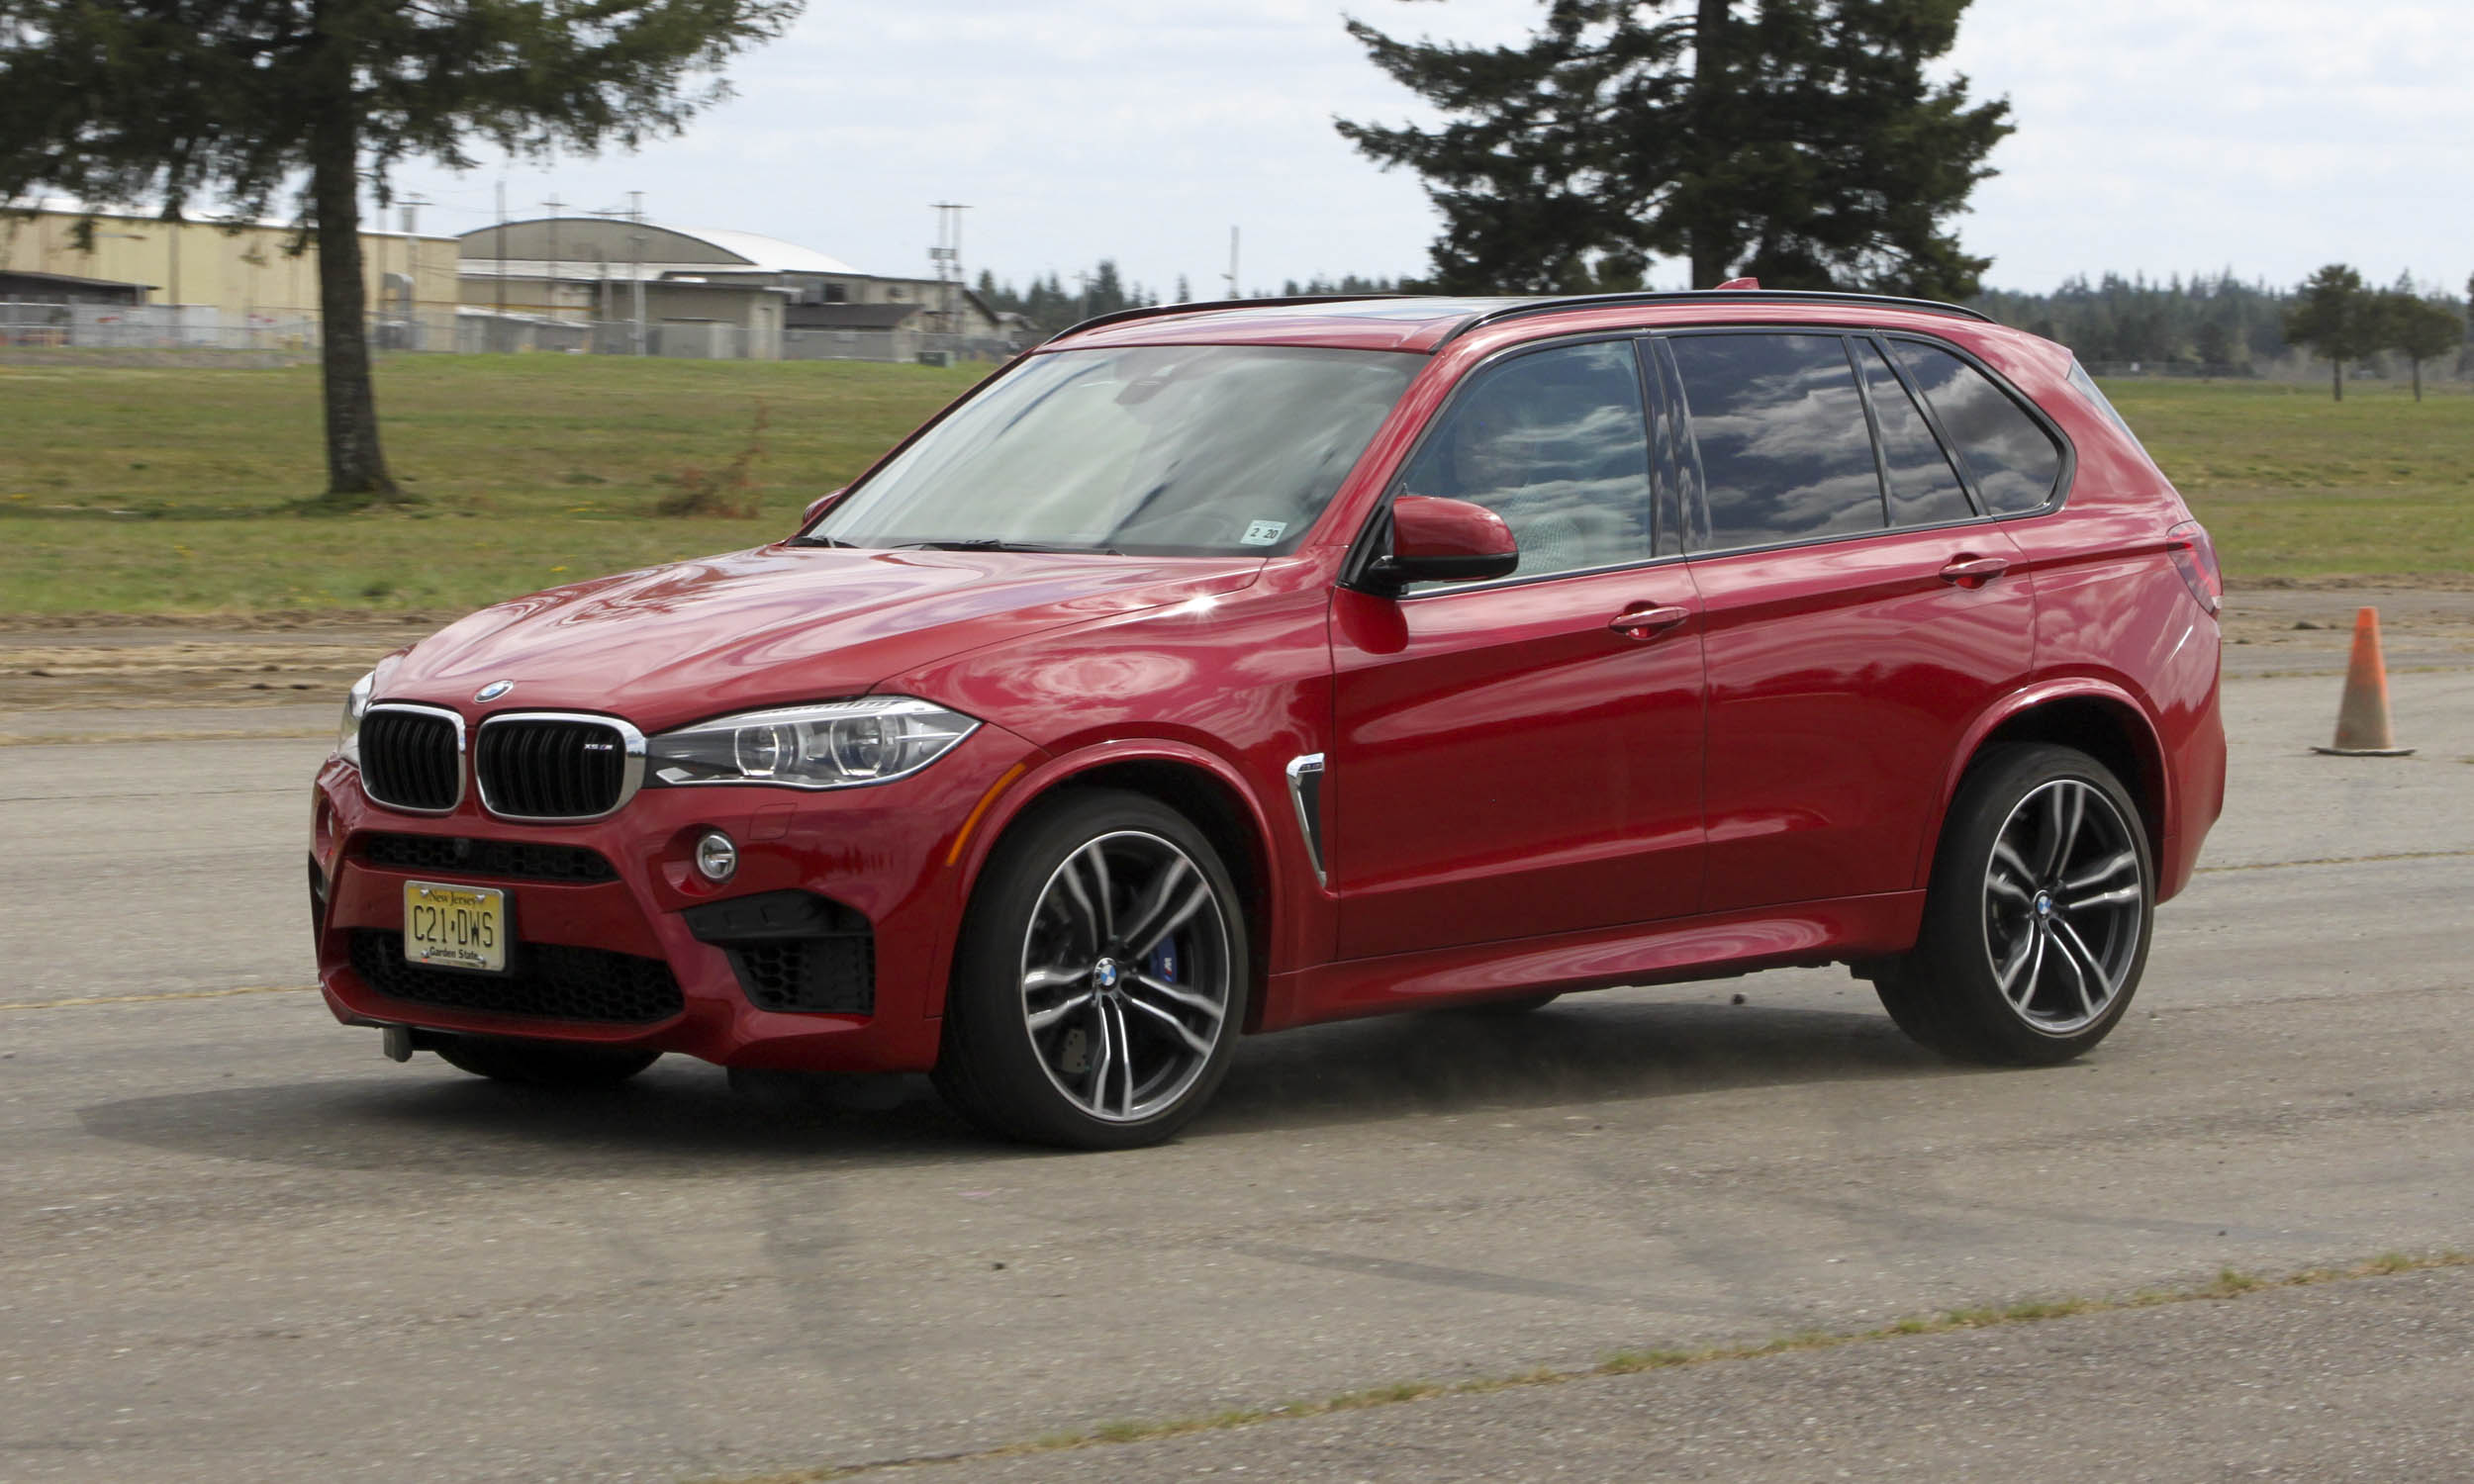 Perry Stern, Automotive Content Experience 6. BMW X5